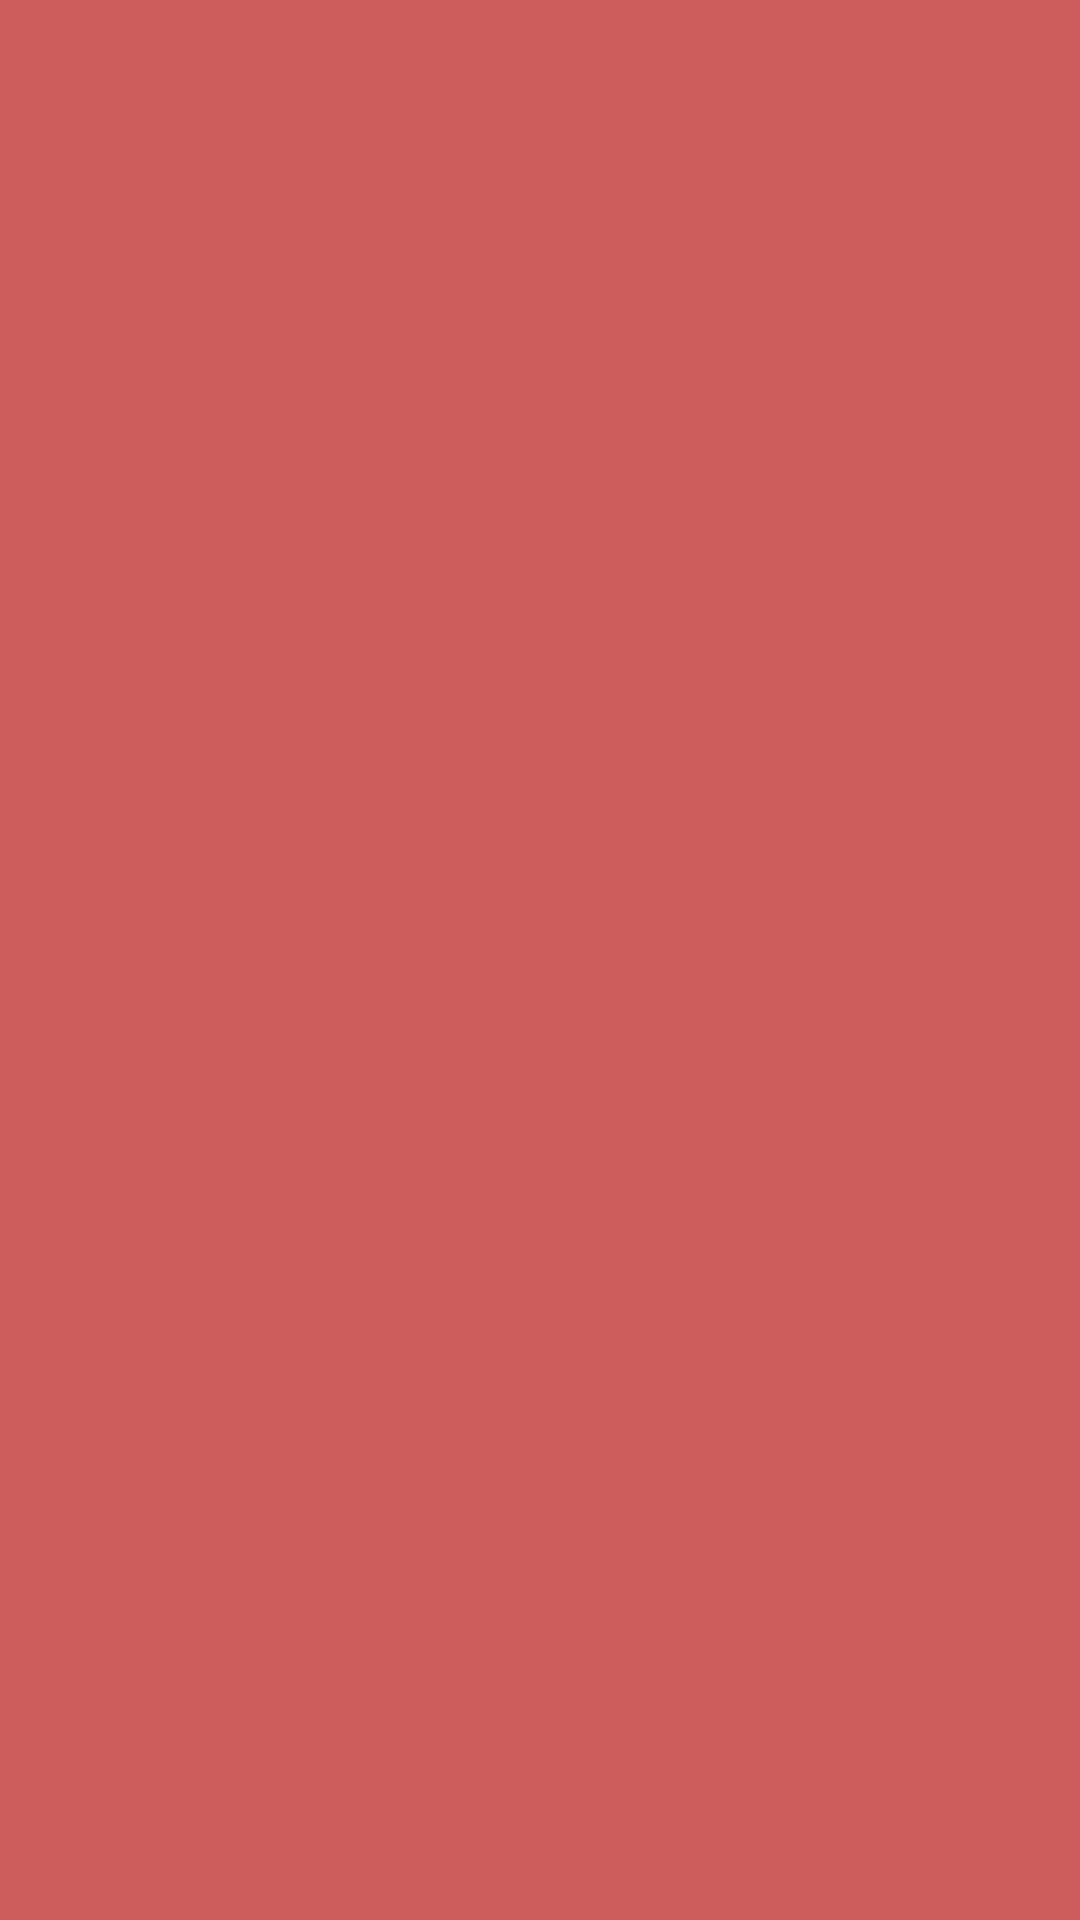 1080x1920 Indian Red Solid Color Background